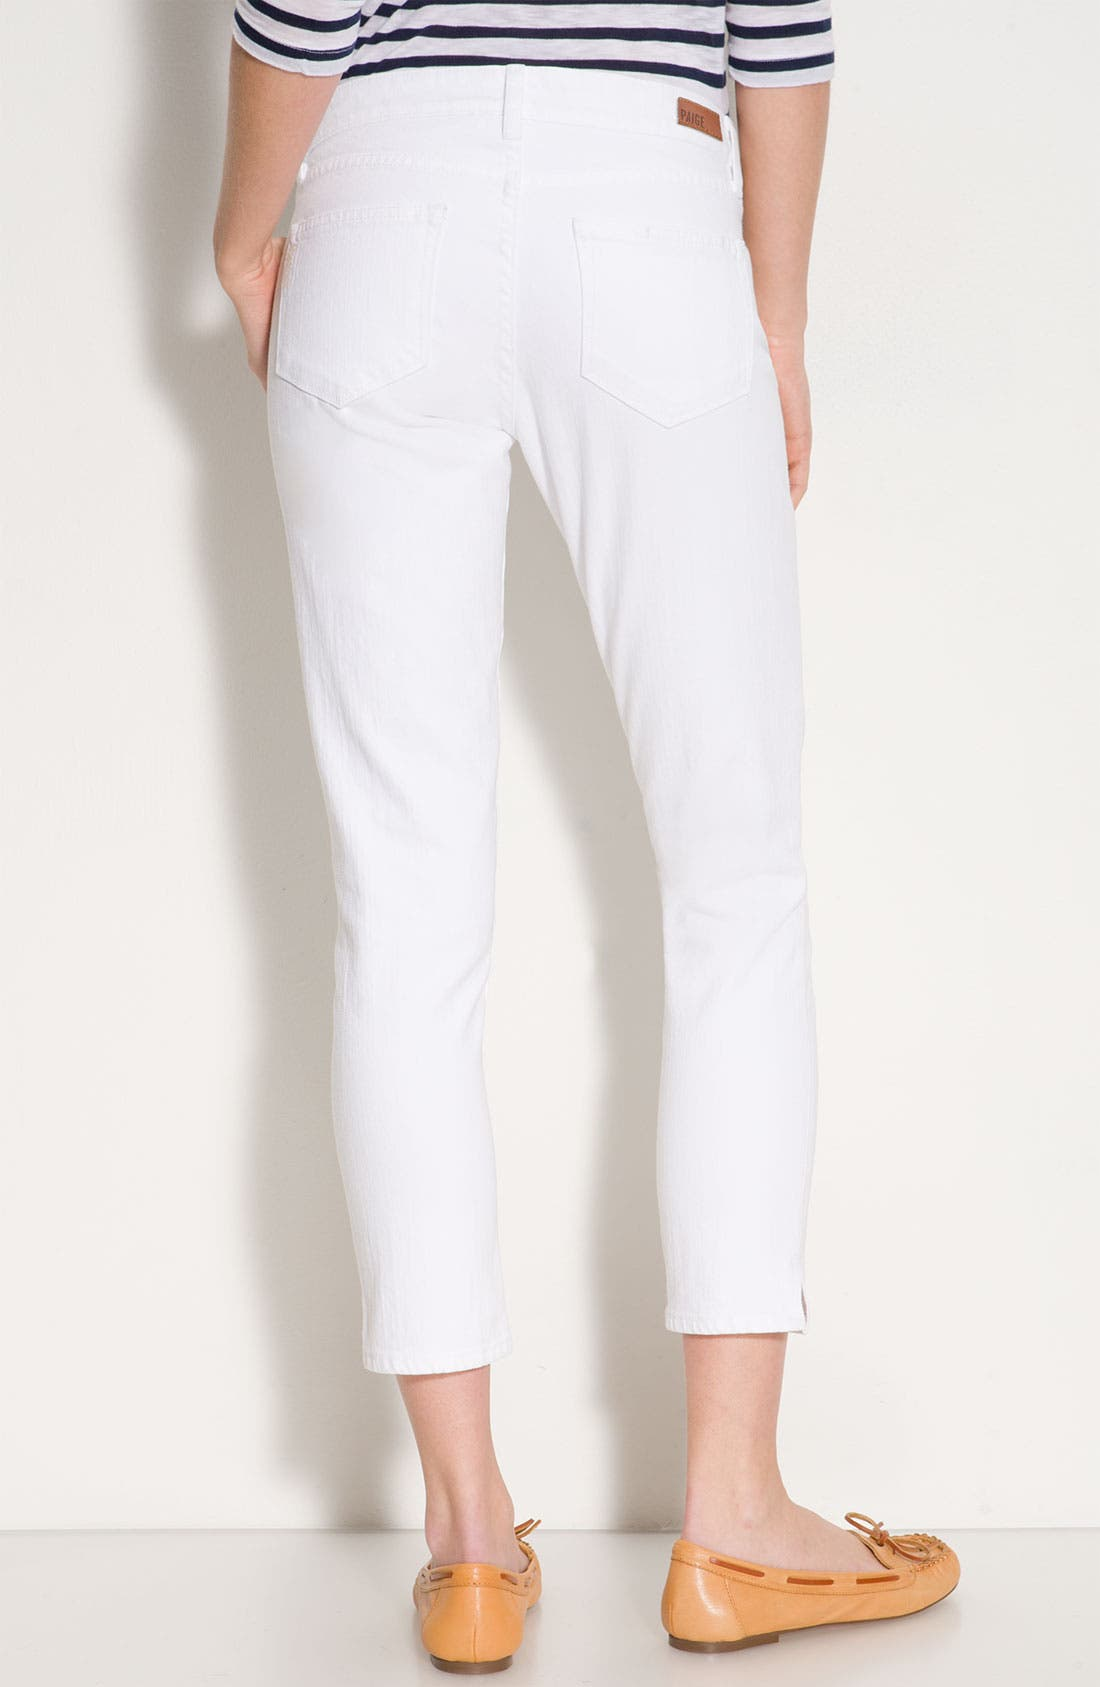 Alternate Image 1 Selected - Paige Denim 'Kylie' Crop Skinny Jeans (Optic White Wash)